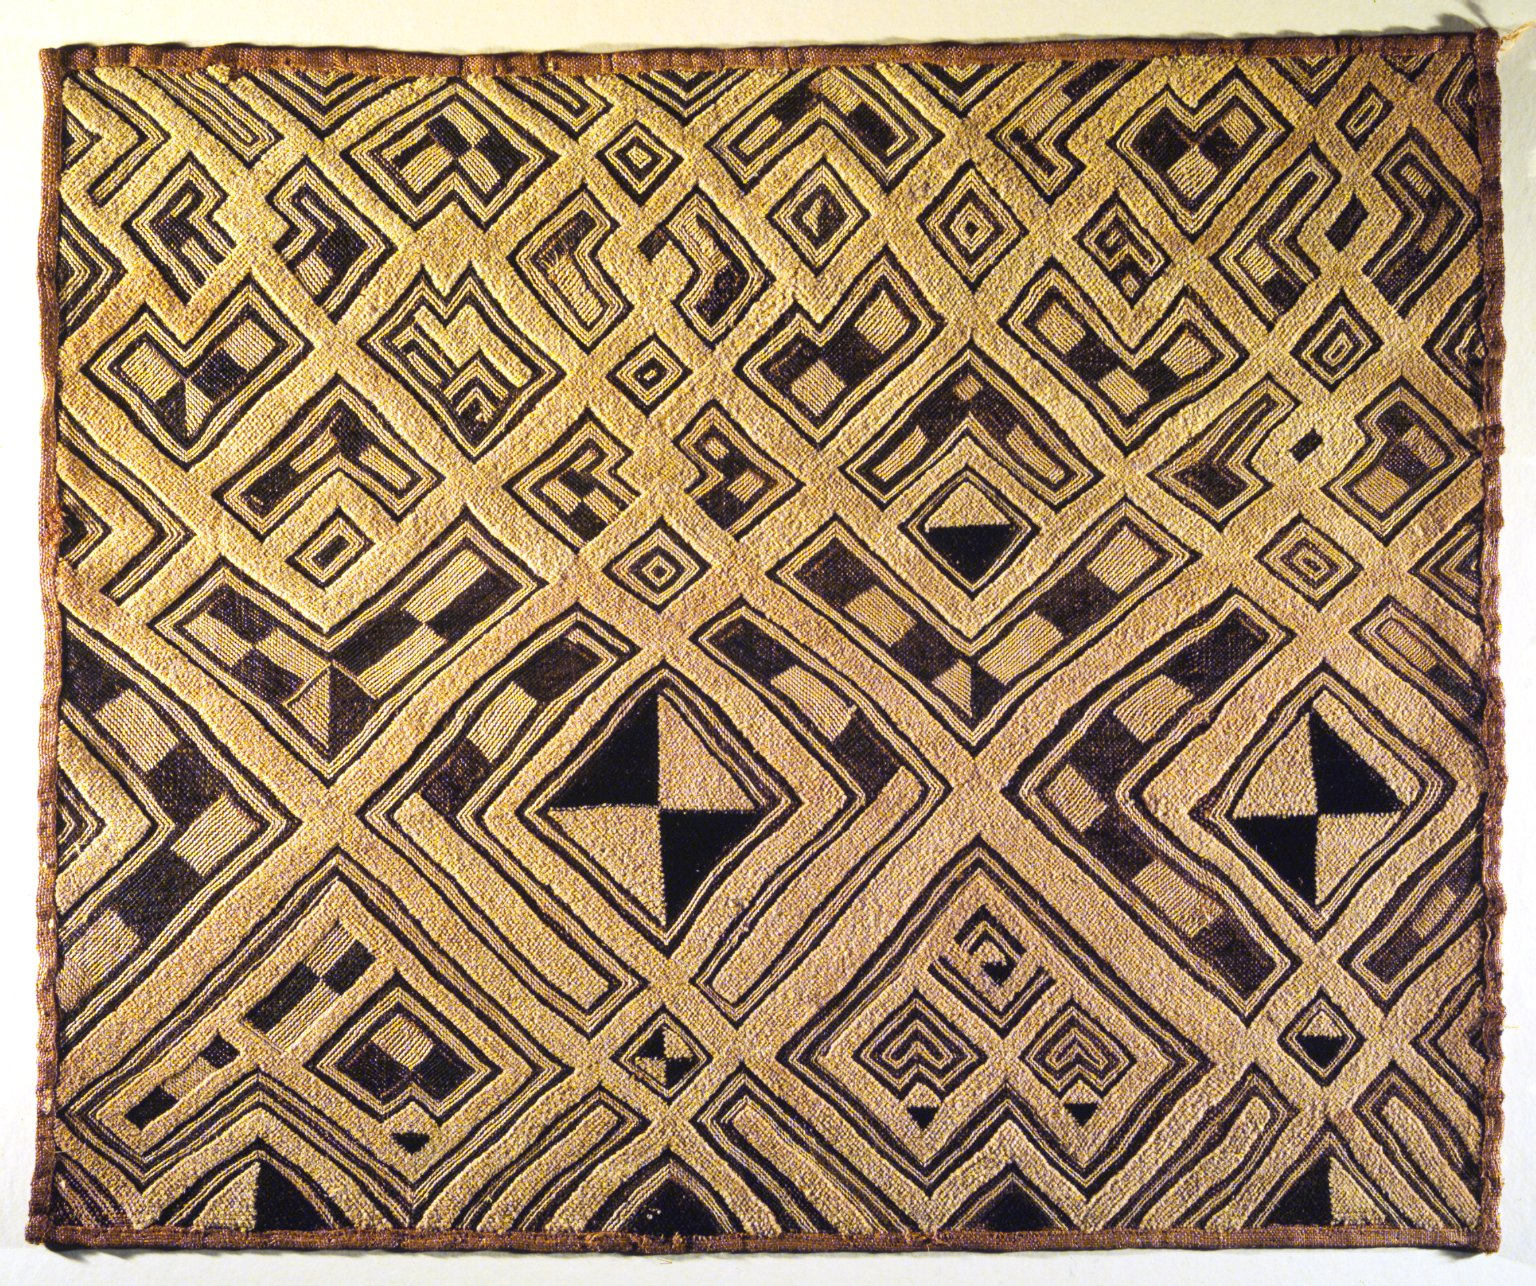 Kuba raffia cloth © CC-BY Brooklyn Museum